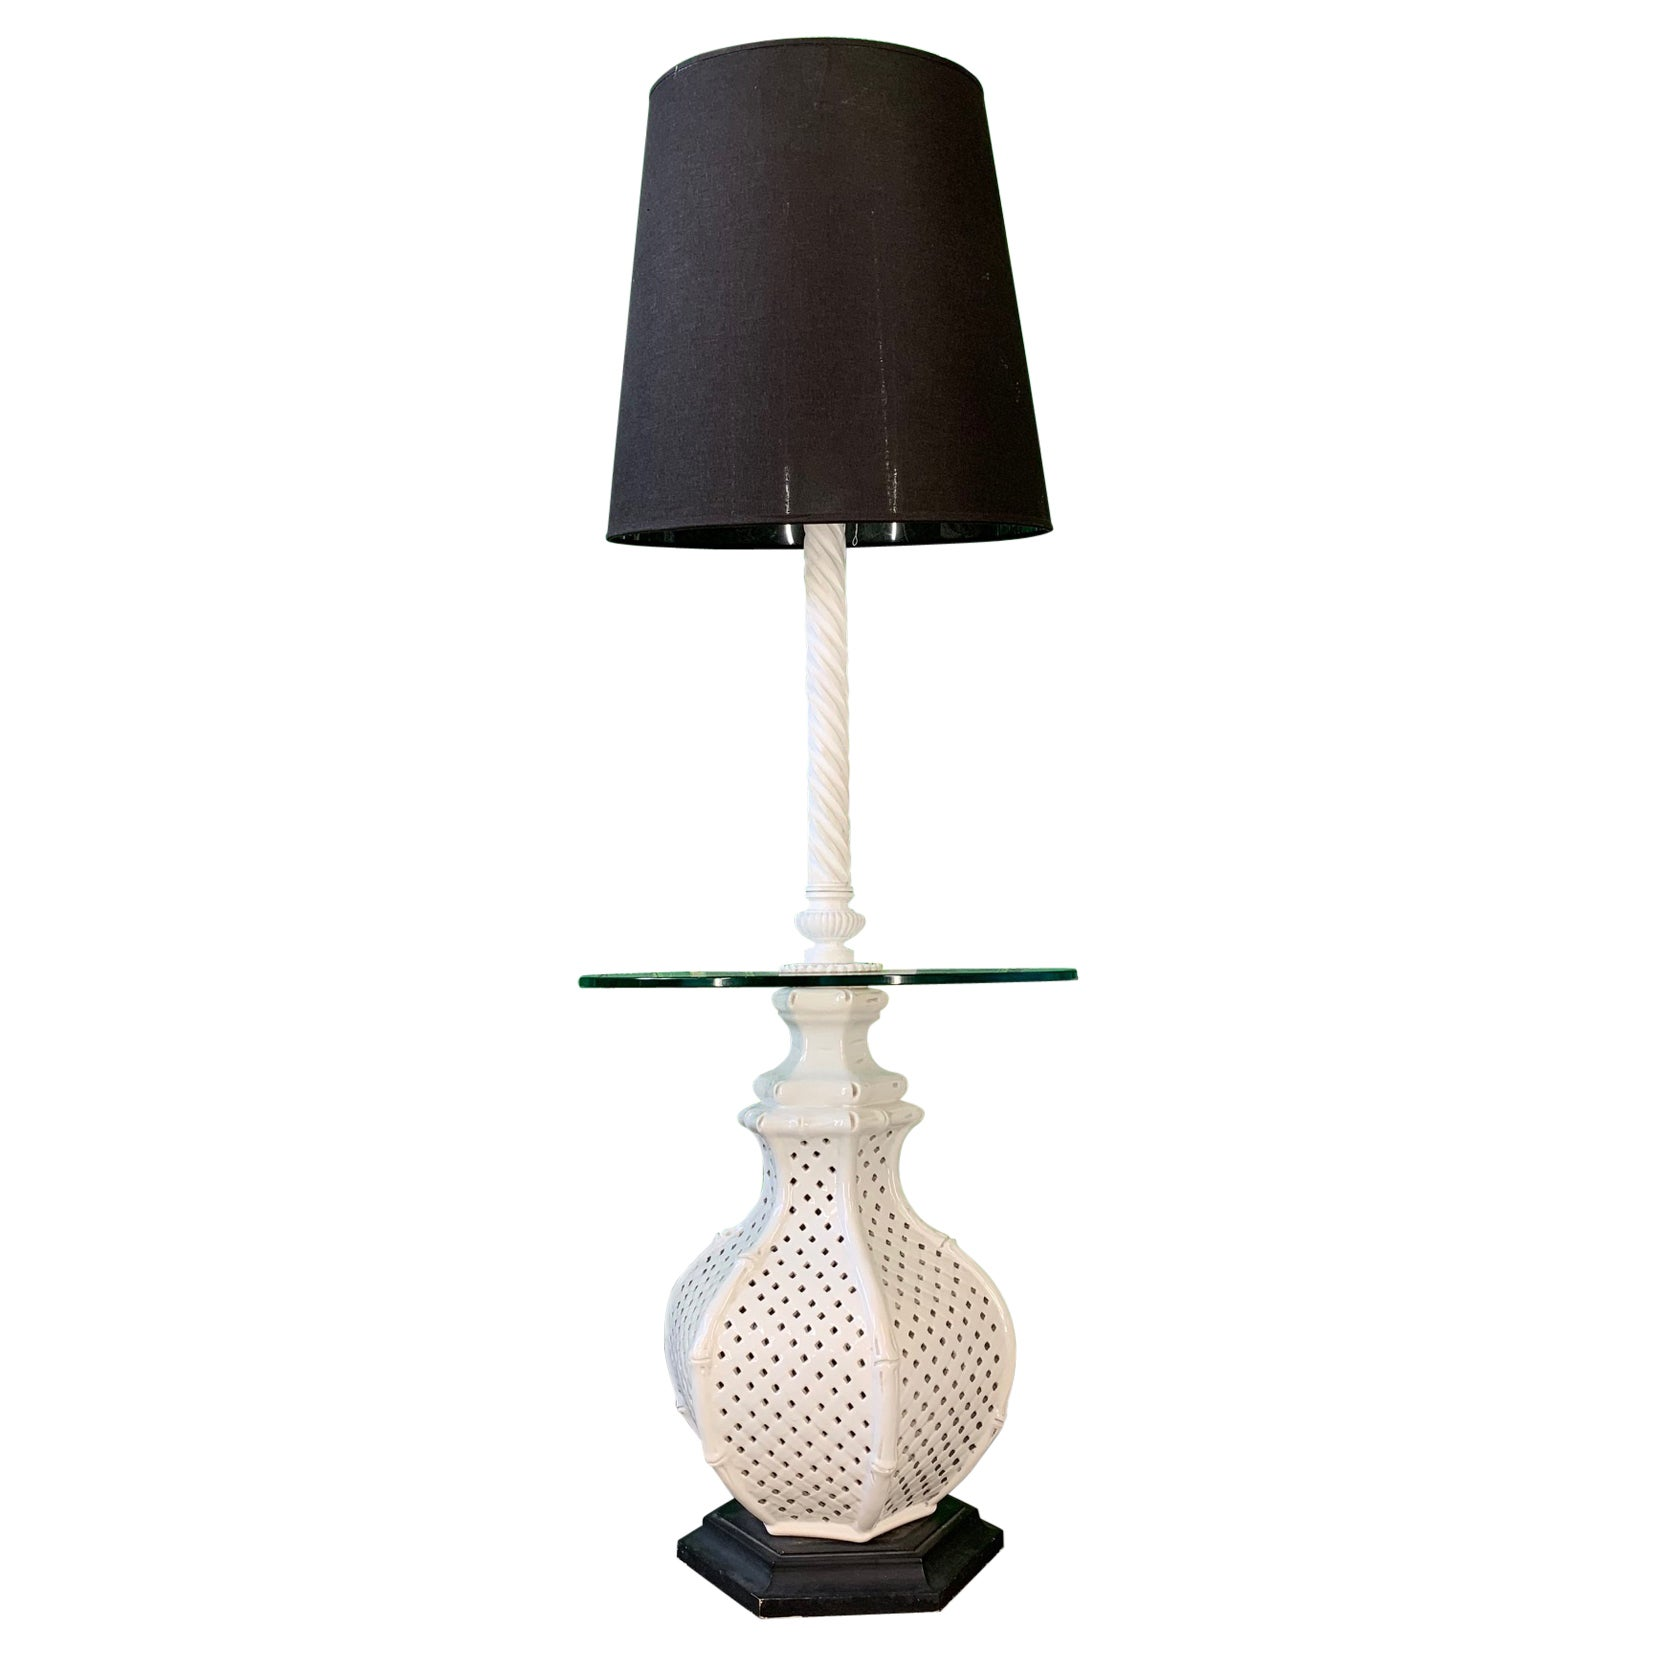 Reticulated Ceramic Floor Lamp Table by Nardini